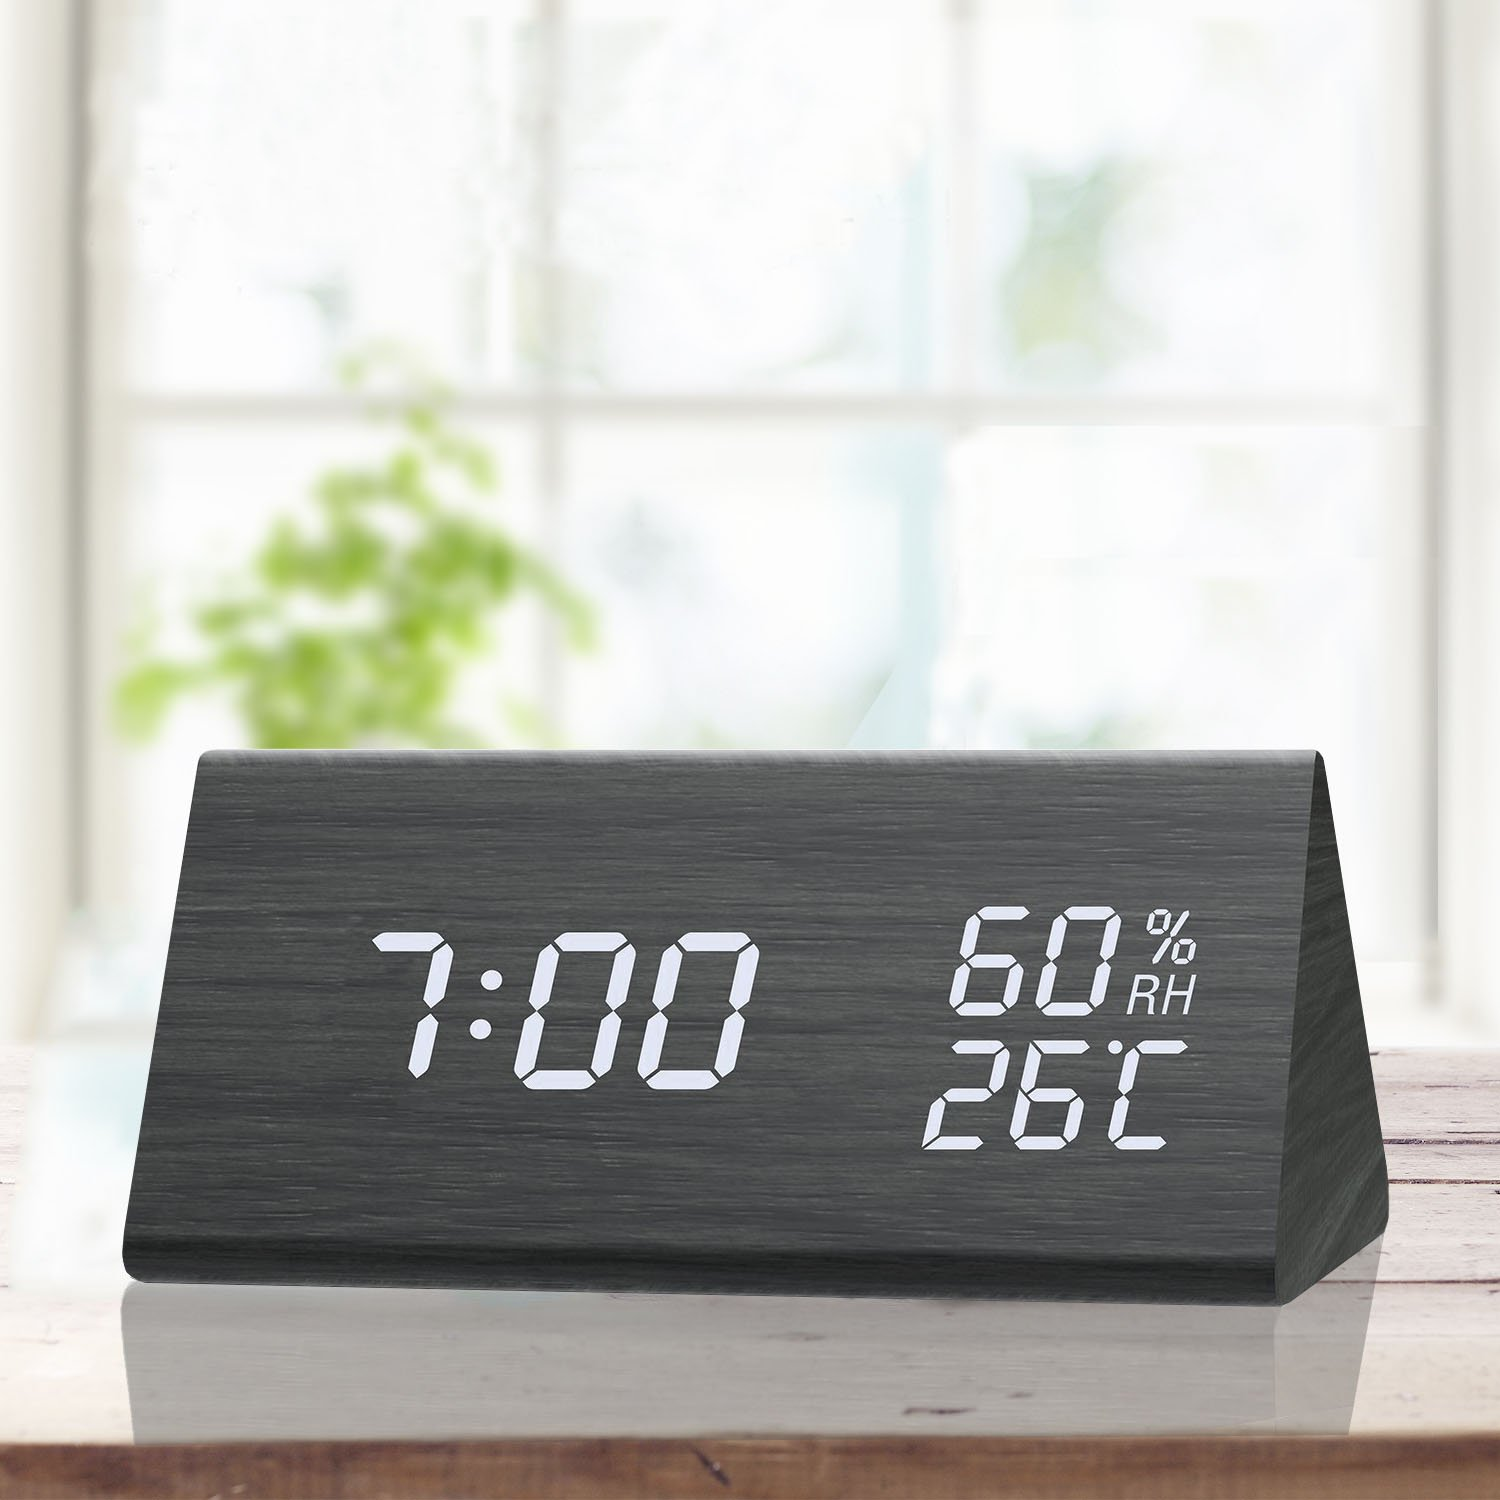 Bedside Kids and Heavy Sleeper Batteries Not Needed Digital Alarm Clock 3 Alarm Settings with Wooden Electronic LED Time Display Dual Temperature & Humidity Detect Ideal for Bedroom (TooTa02)